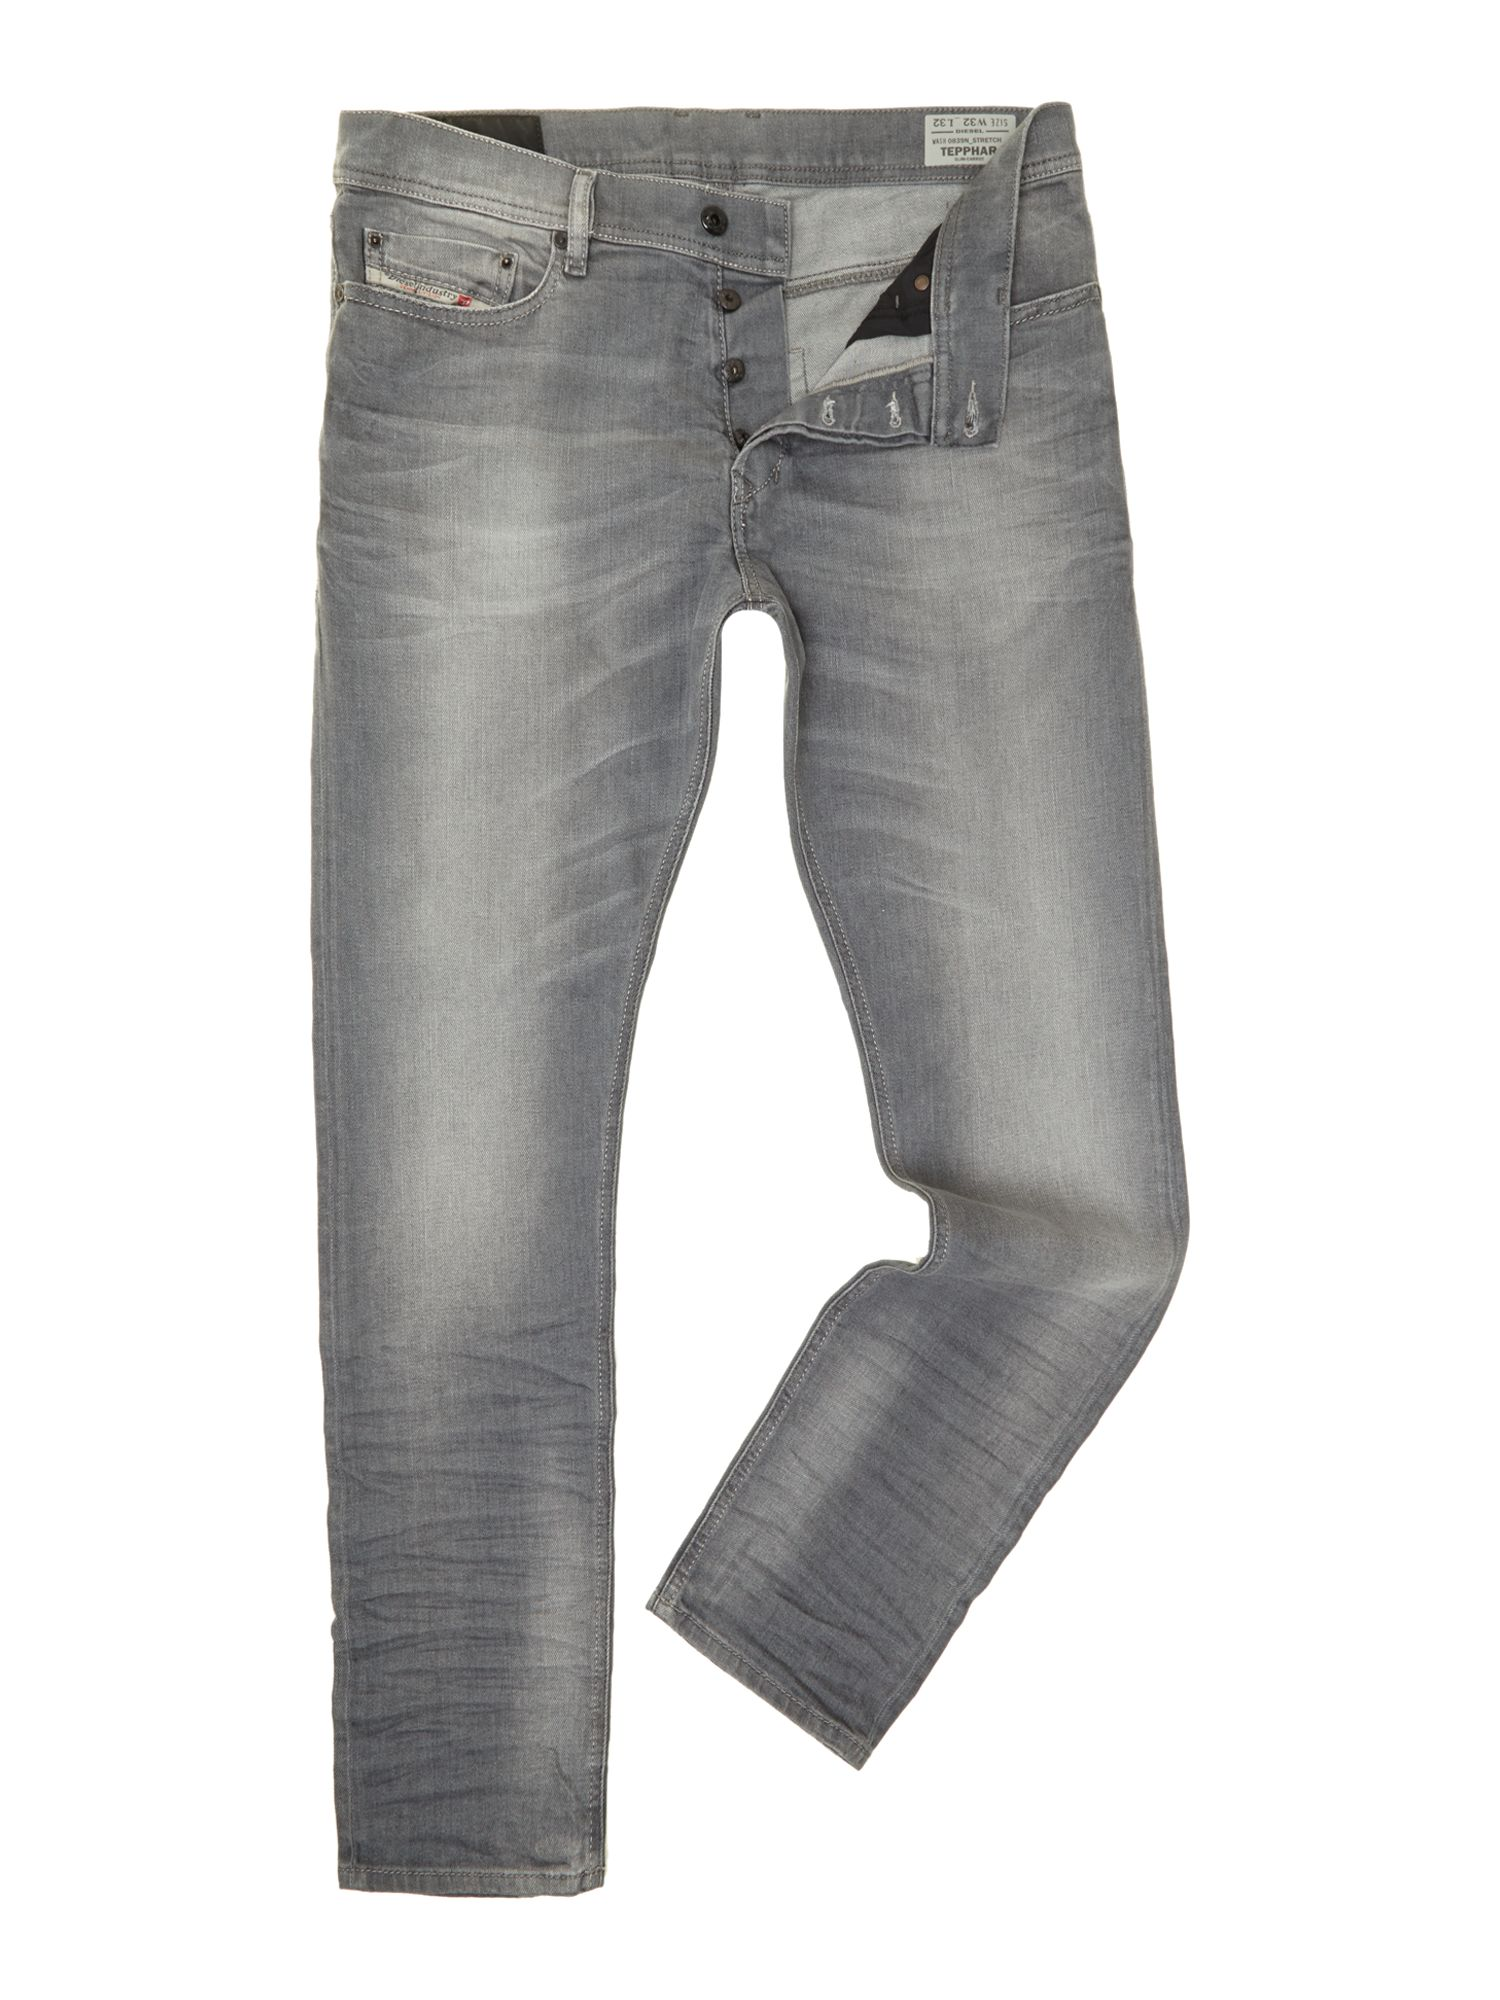 Buy cheap Diesel jeans - compare Men's Trousers prices for ...